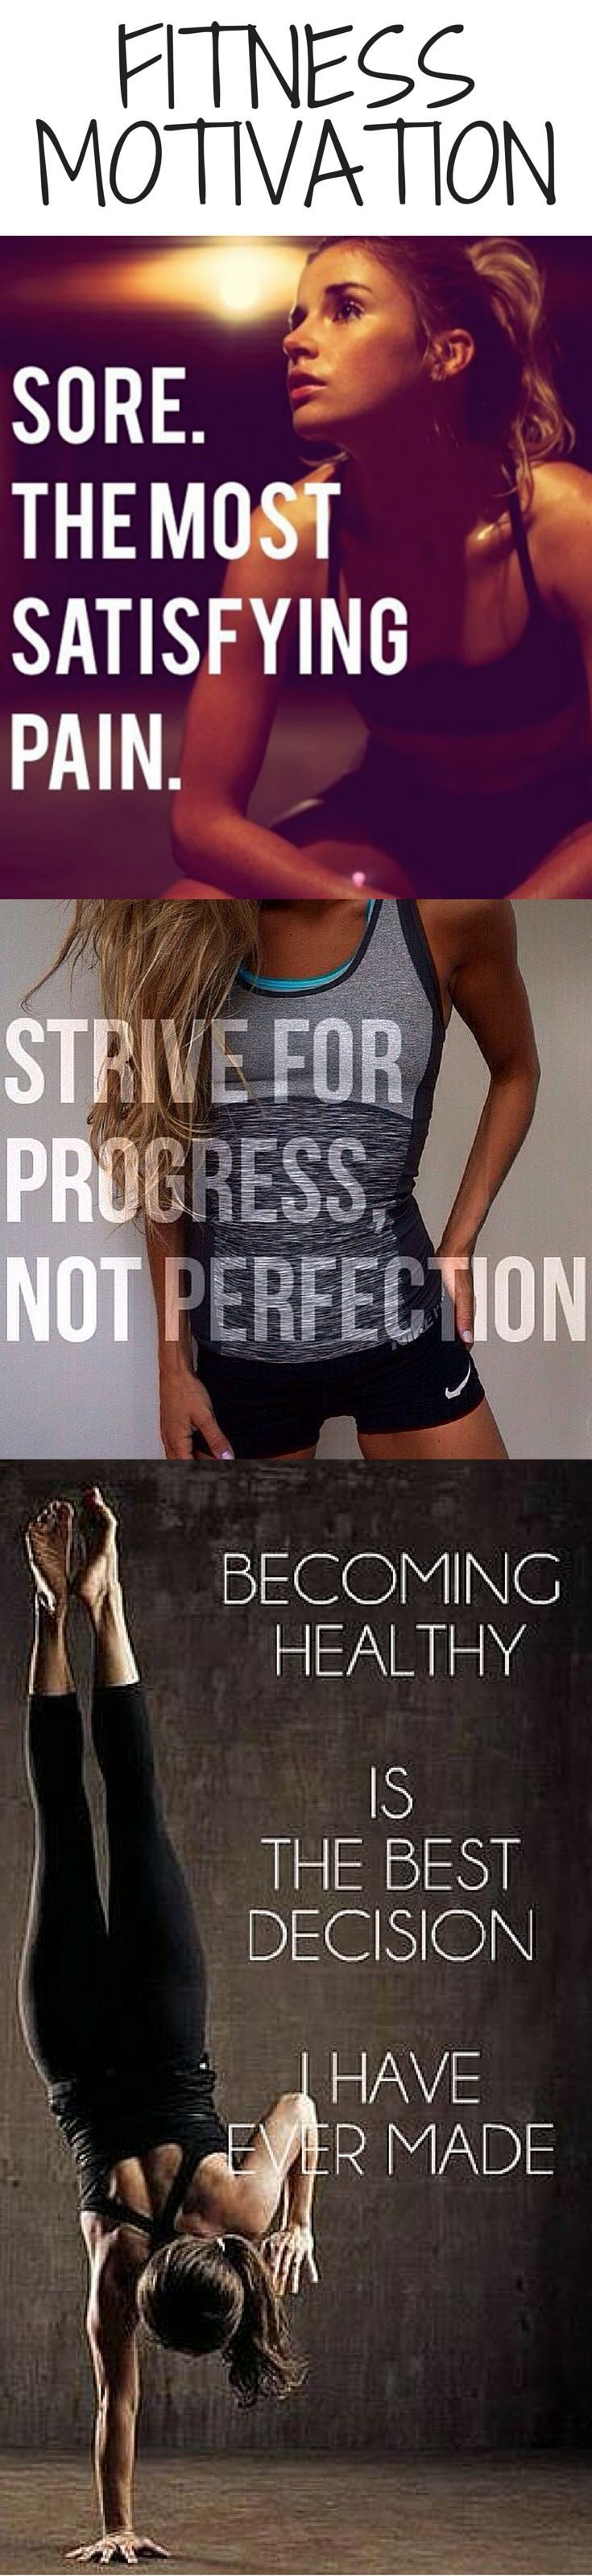 Being Fit Quotes For Motivation: 25+ Best Ideas About Women Fitness Motivation On Pinterest